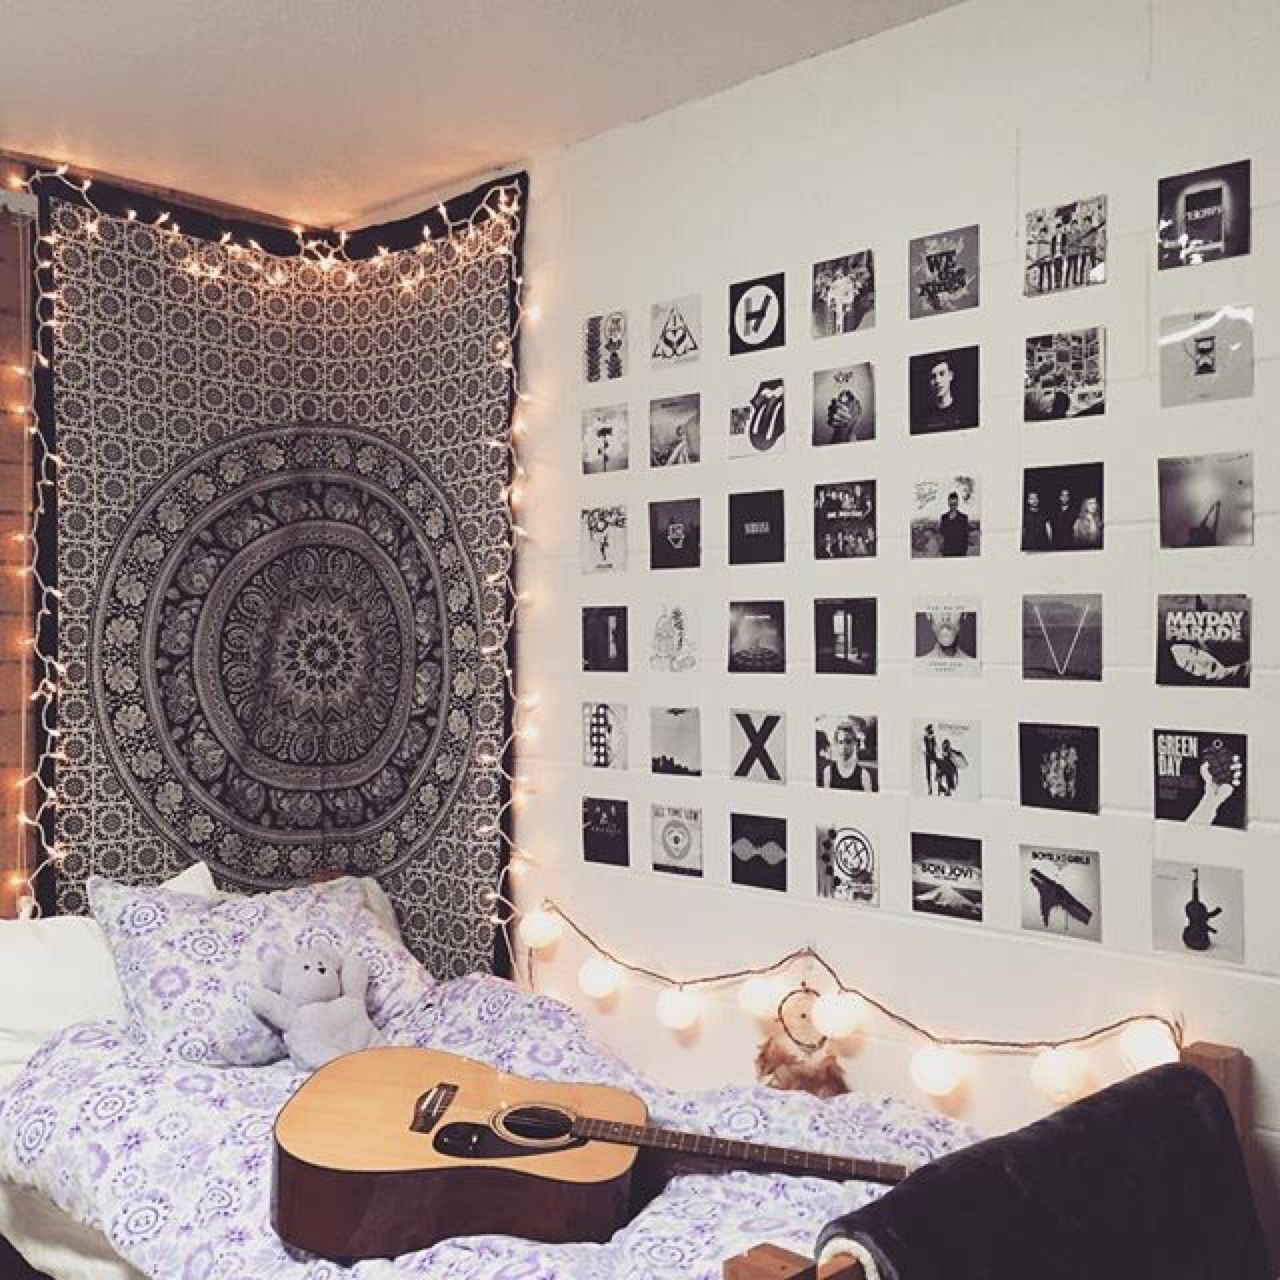 Teenage bedroom wall art - Bedrooms